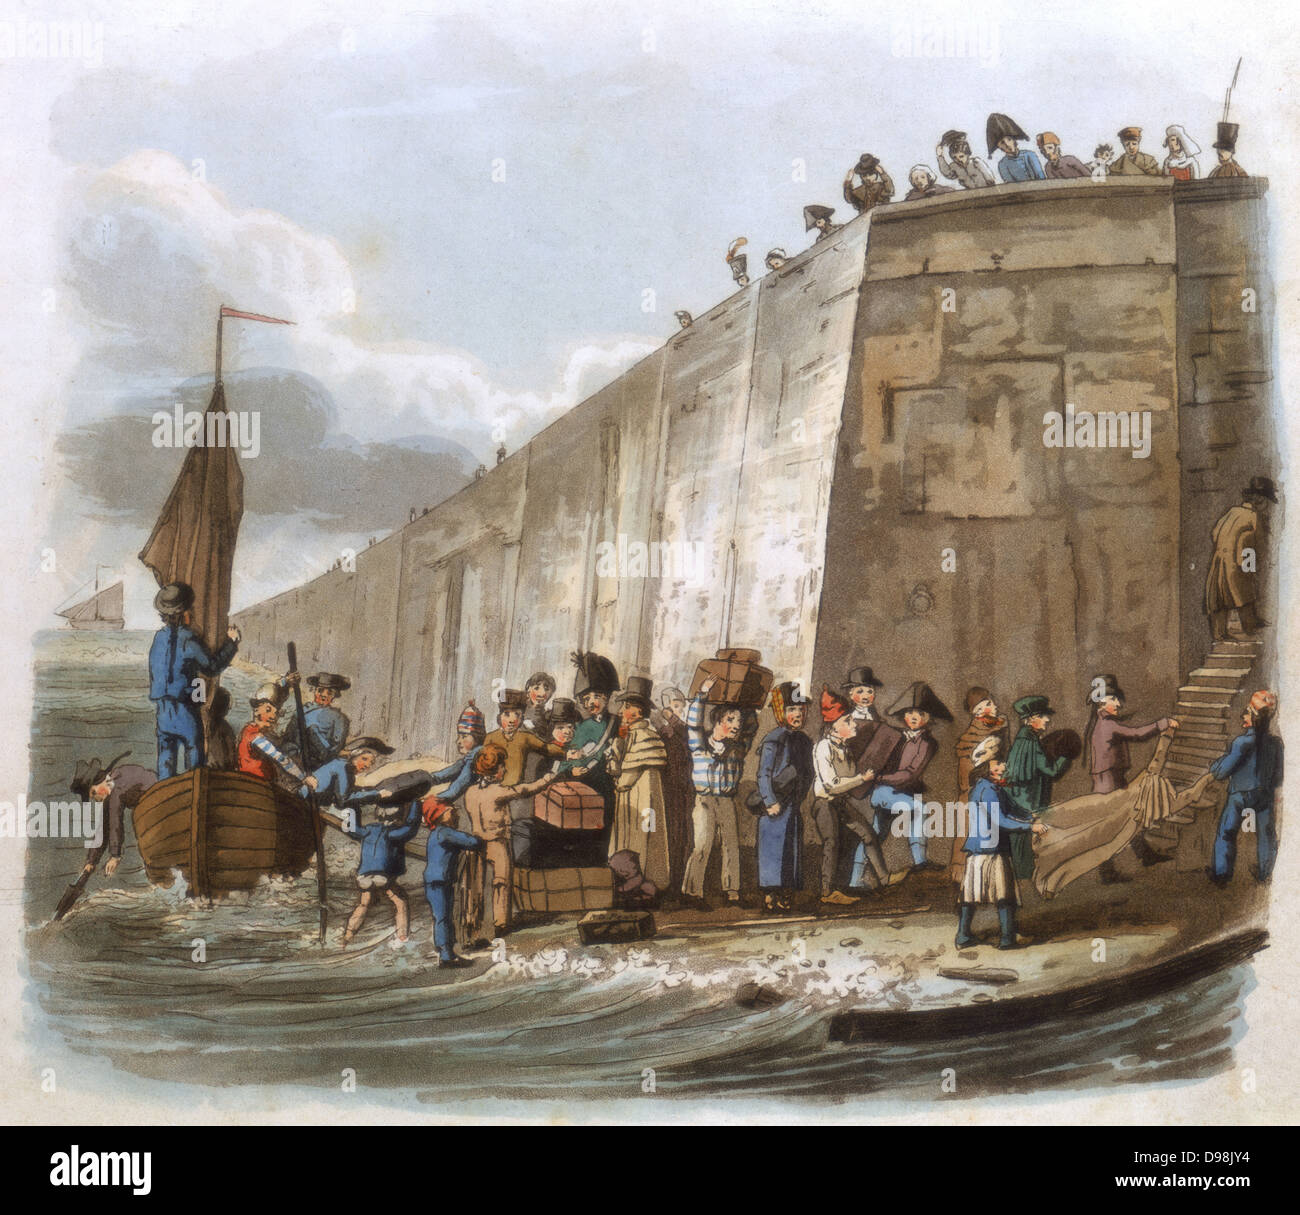 Arriving at Calais', Aquatint, London, 1816. Travellers from England landing in France with their luggage, some Stock Photo